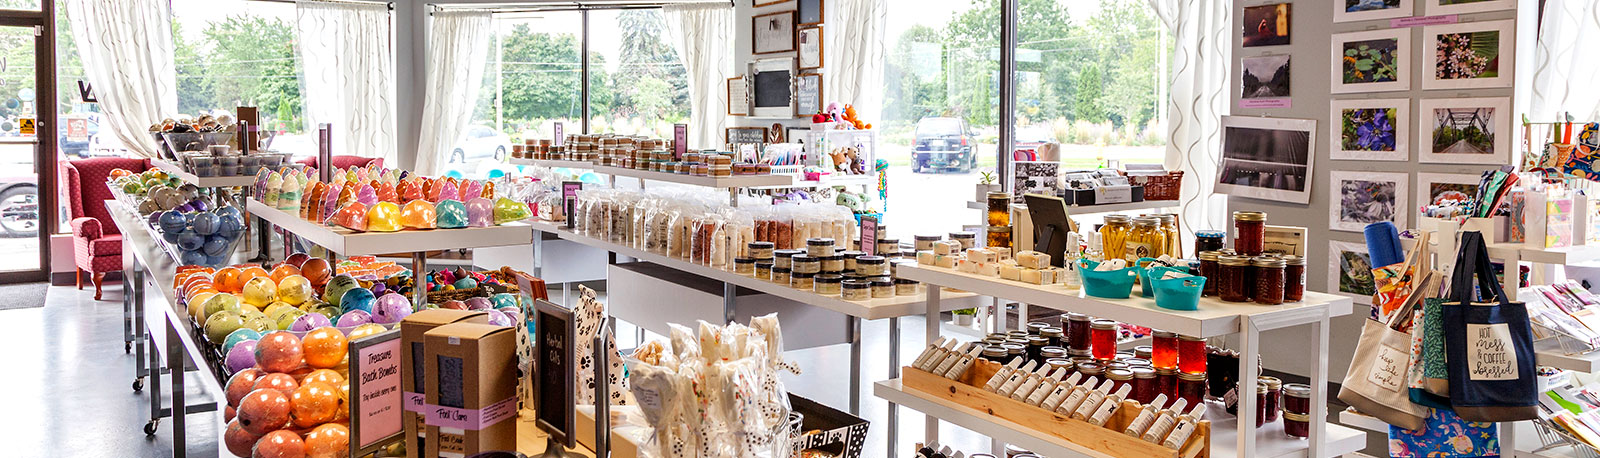 Wild Rose store interior with products